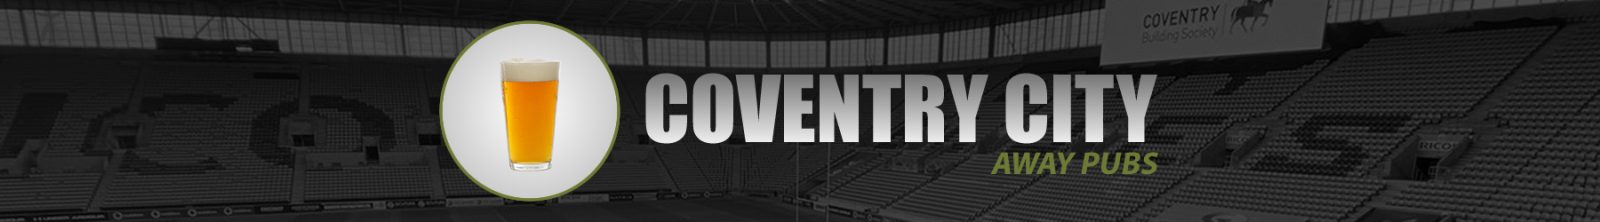 Coventry City Away Pubs